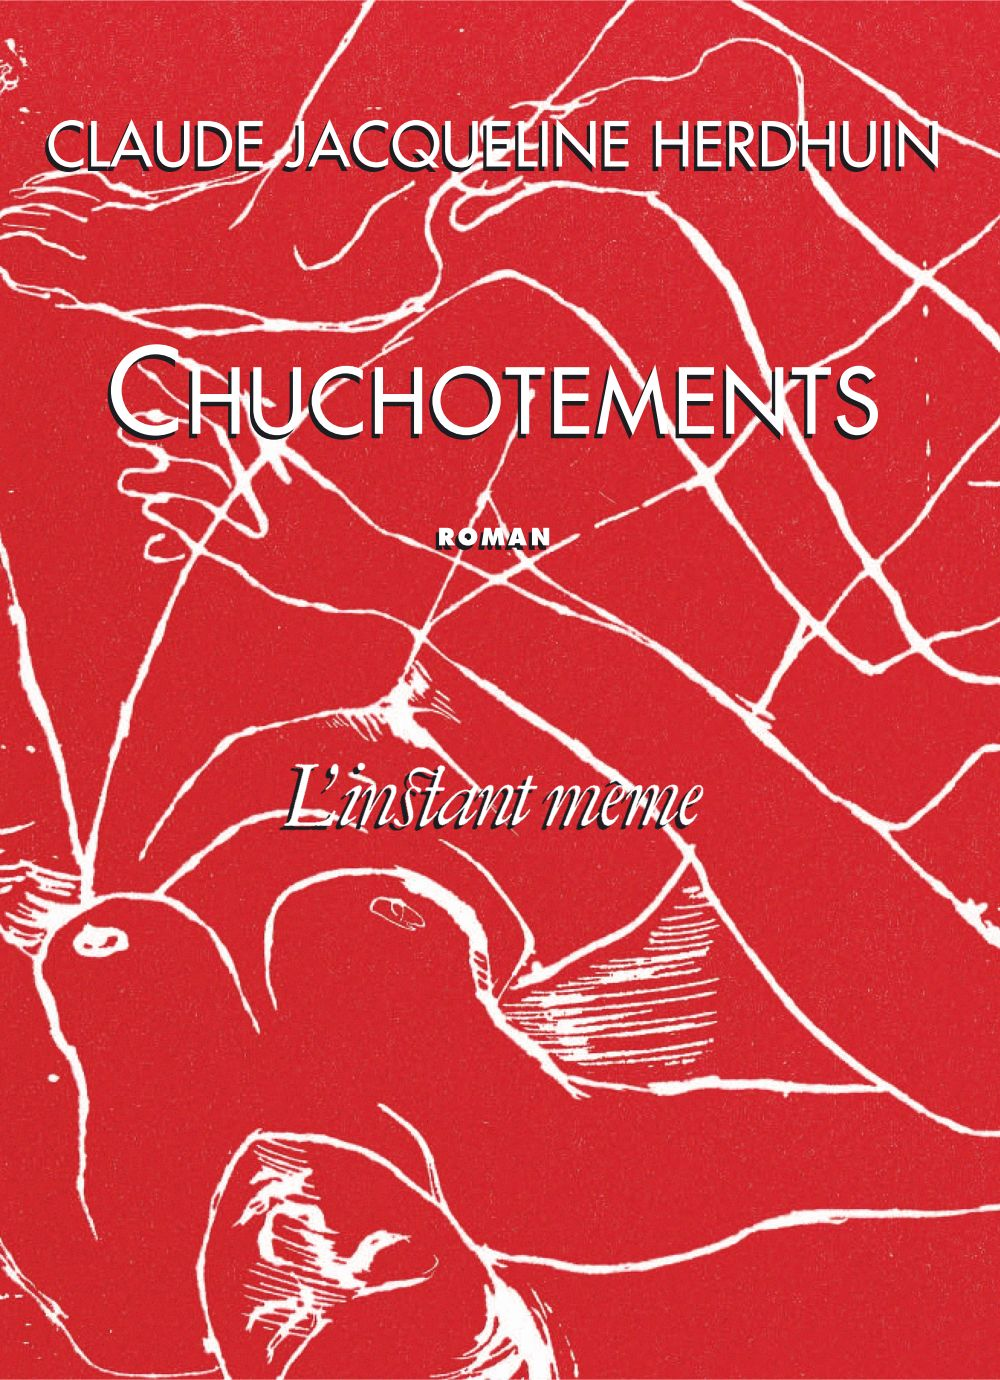 Chuchotements